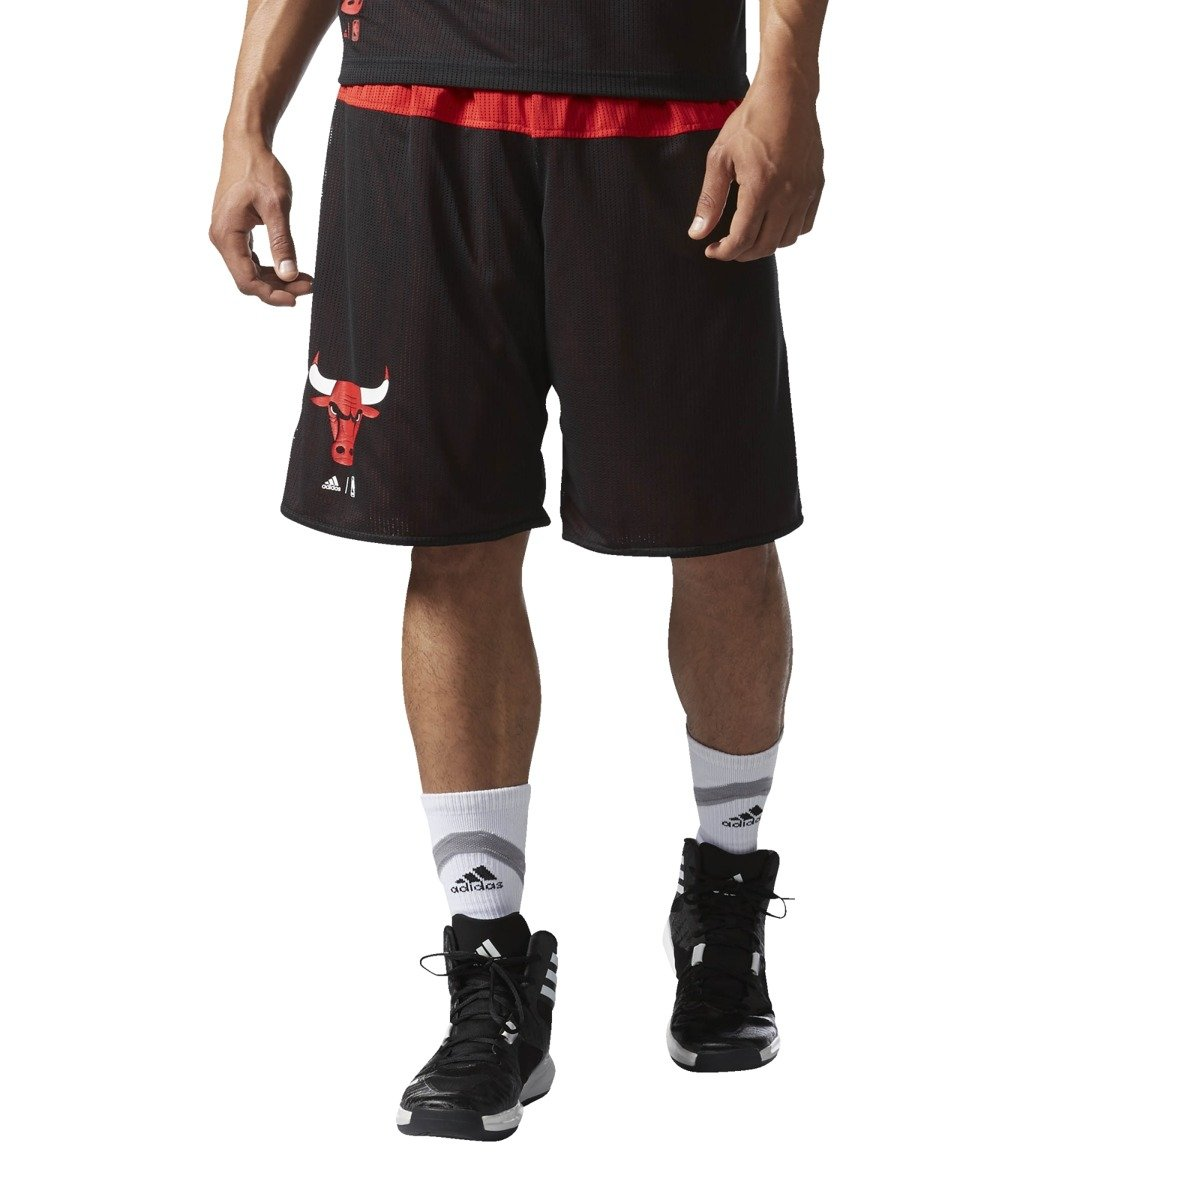 ... Adidas NBA Chicago Bulls Basketball Shorts - B45453 ... 2db8cefad2e